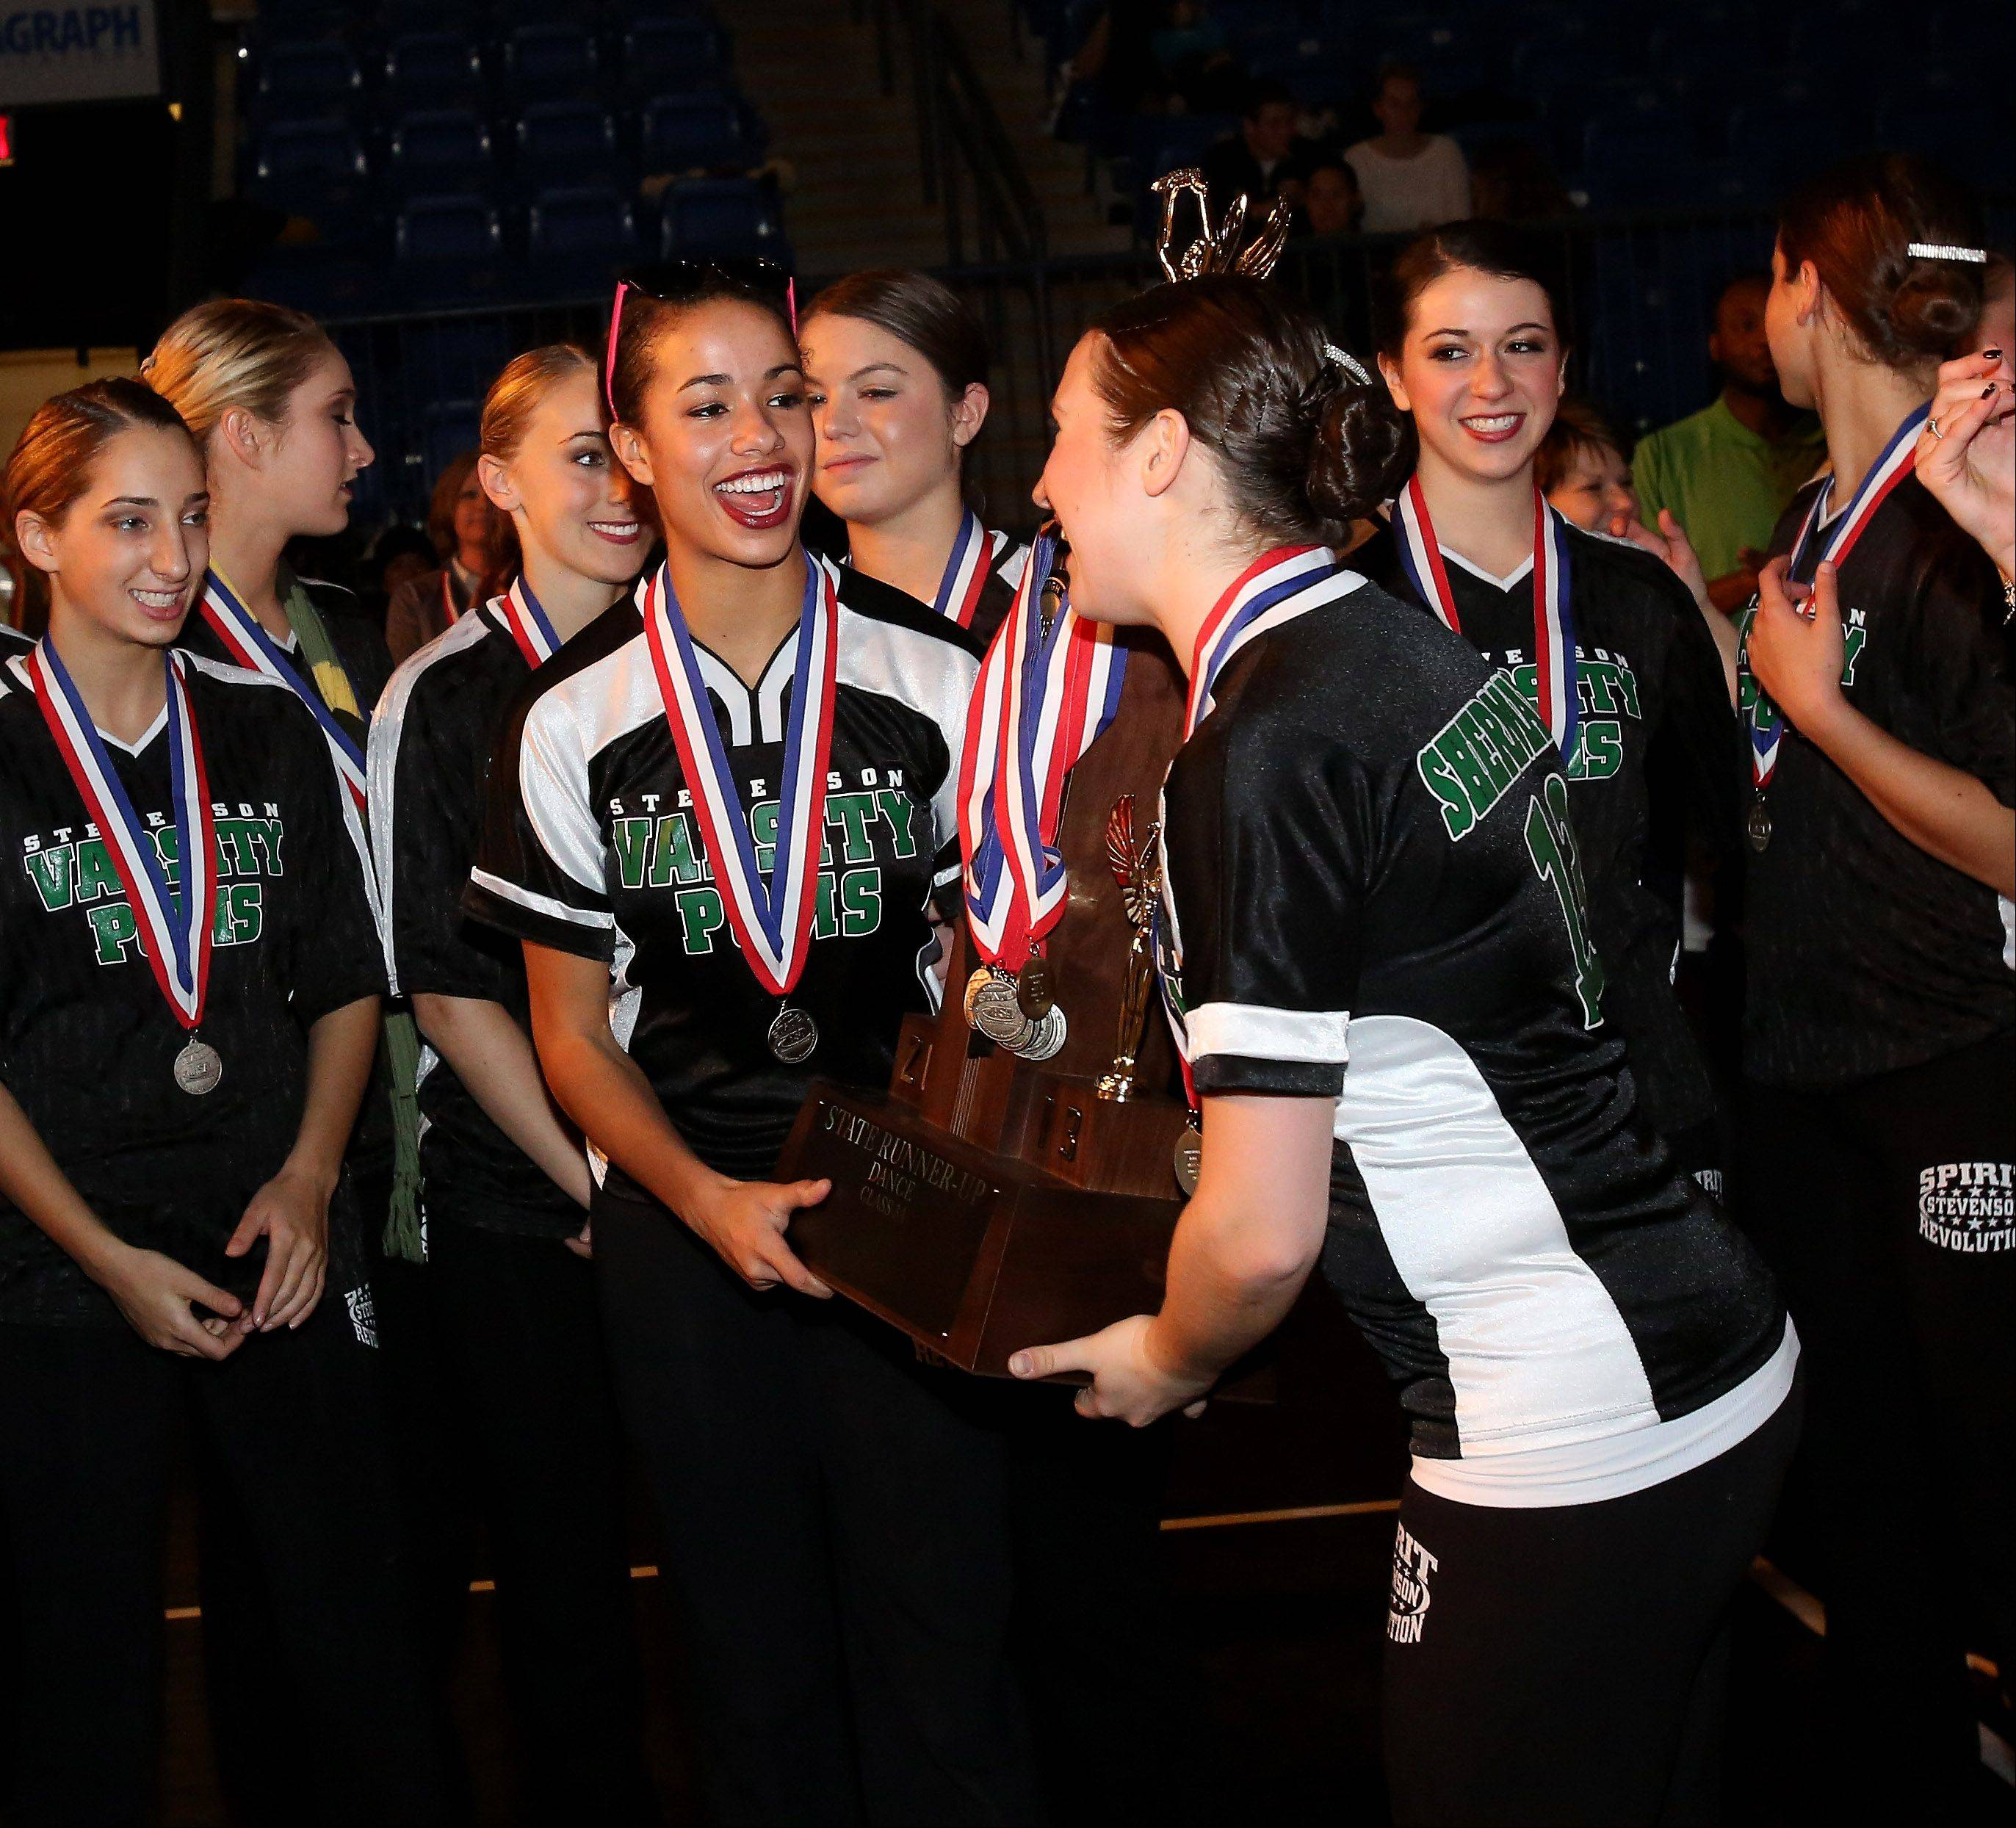 Stevenson High School won second place in the 3A division of the Competitive Dance State Finals on Saturday in Bloomington.